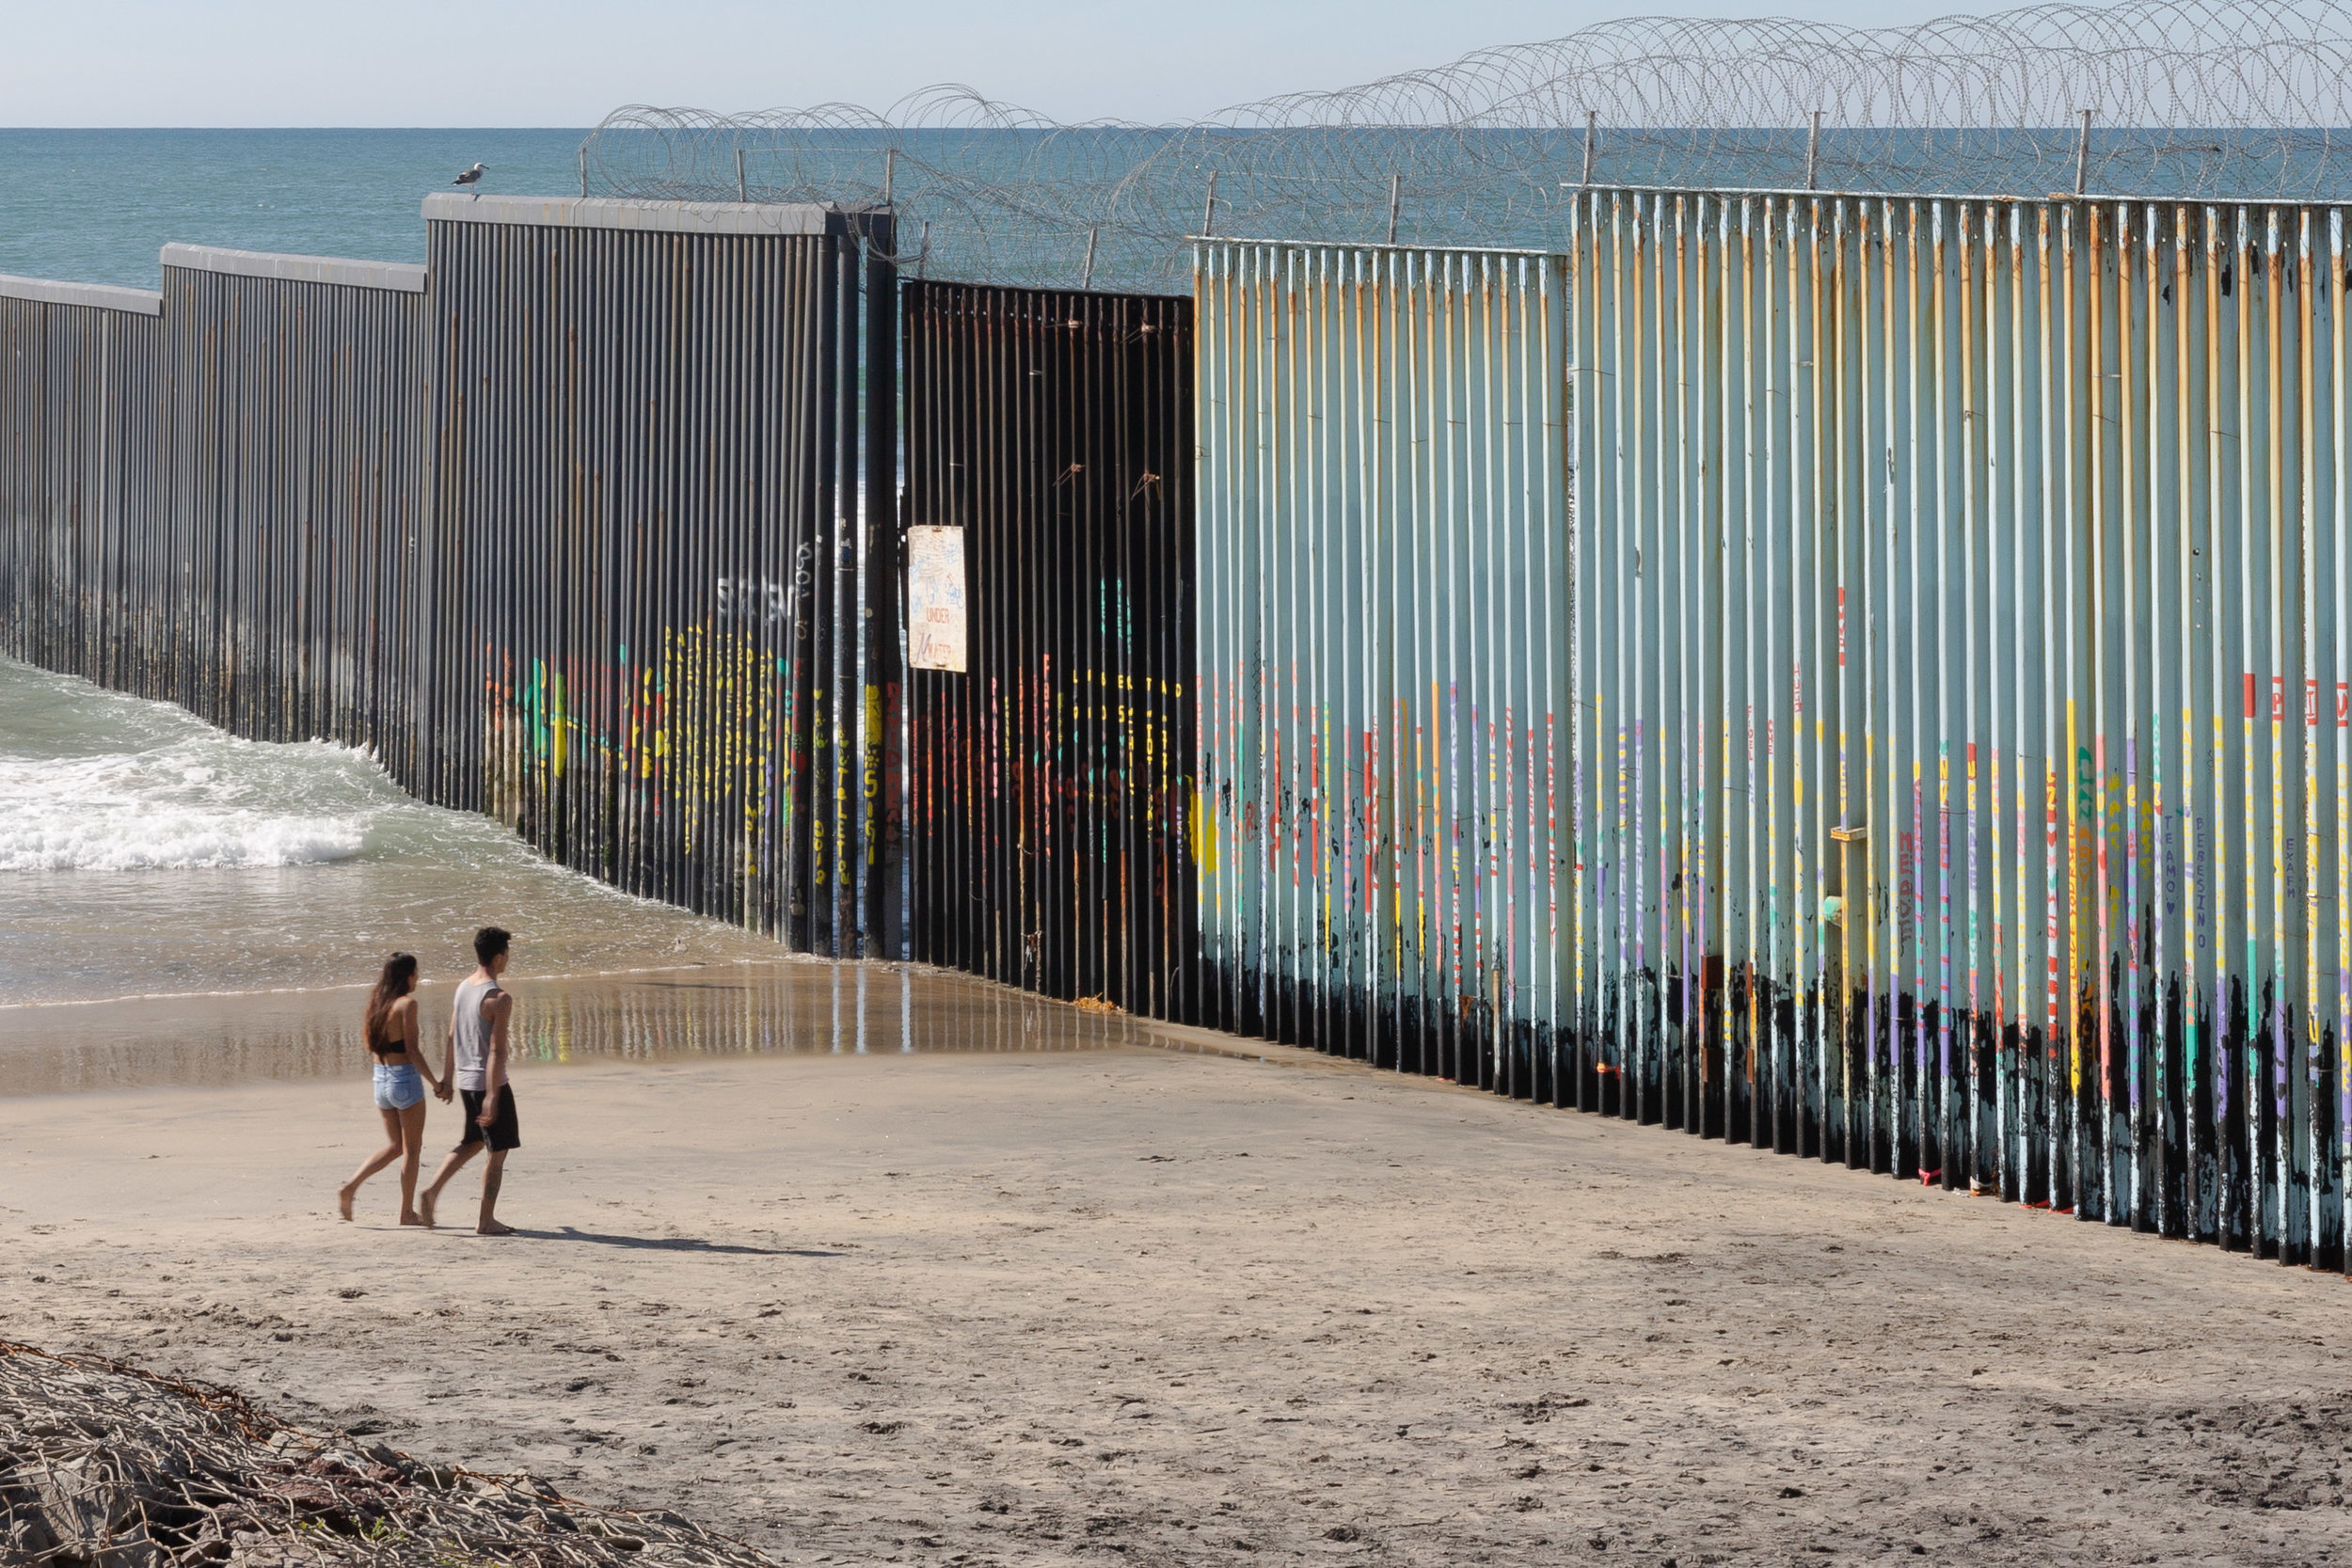 A couple walks along the beach close to the US-Mexican border wall in Playas de Tijuana in Tijuana, Mexico, on Saturday, February 23, 2018. Photo by: Ben Camacho.